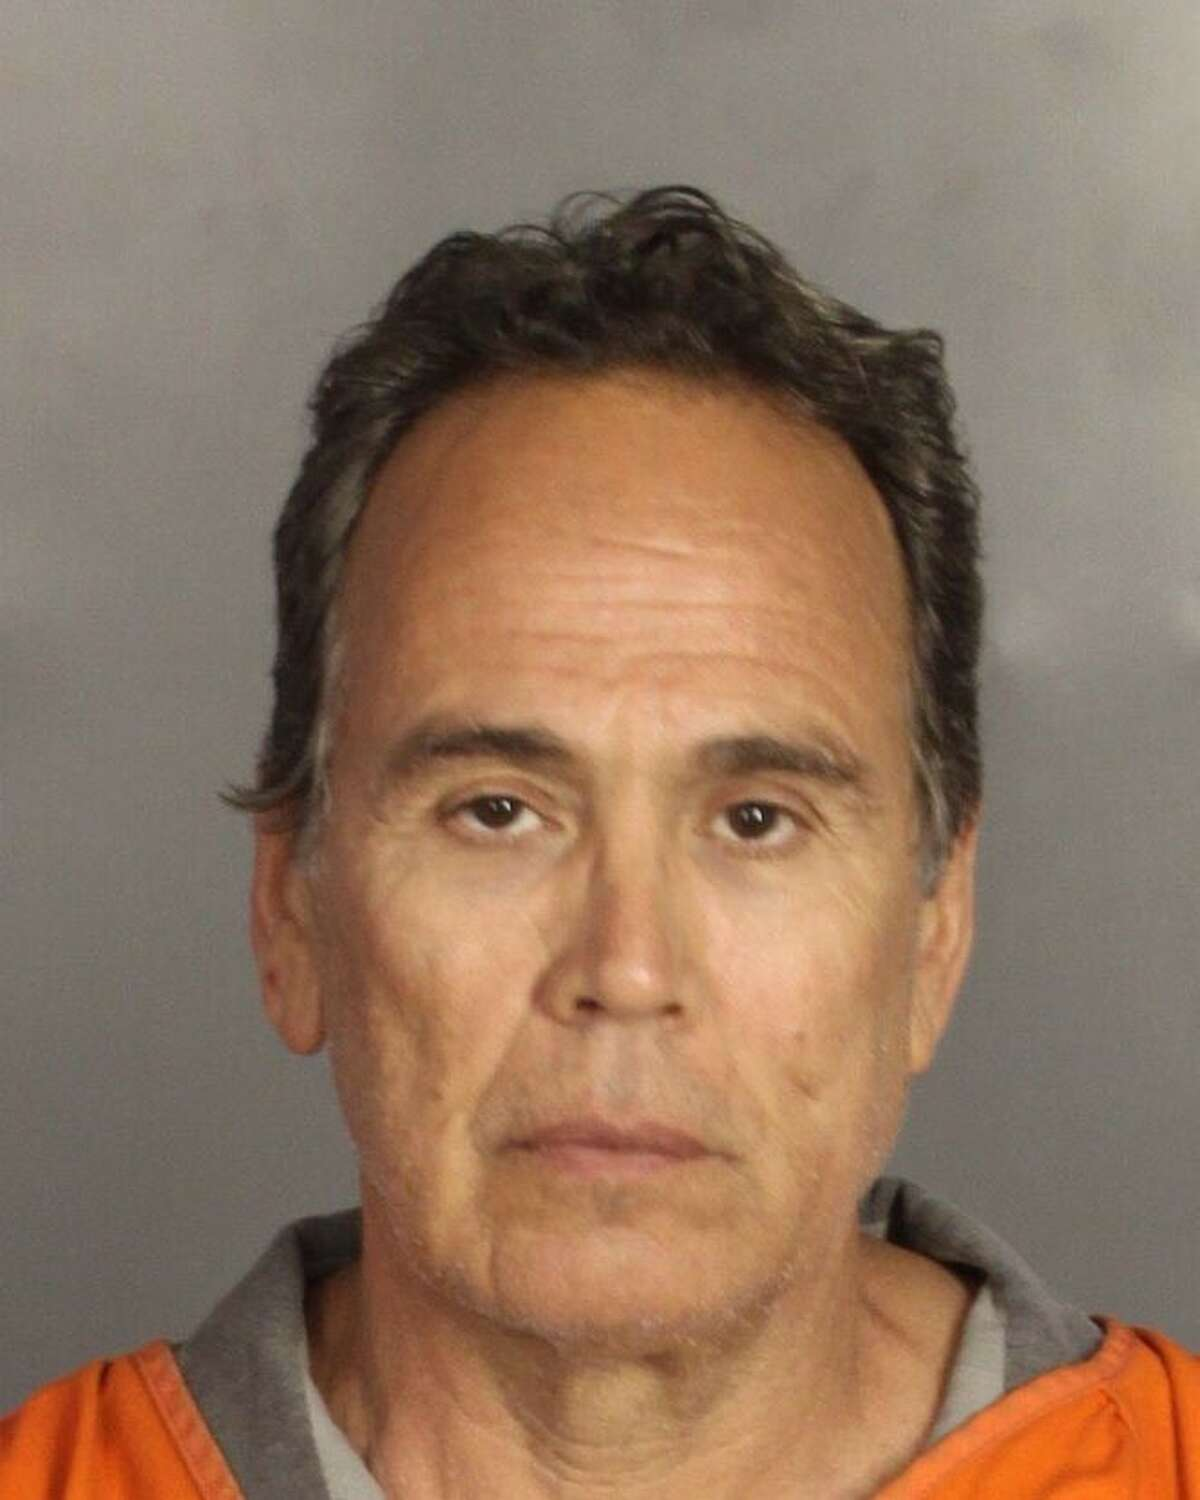 Richard Benavides, 60, of San Antonio was booked and charged with engaging in organized criminal activity in connection to a shooting involving motorcycle gangs at a Twin Peaks restaurant in Waco at around noon on May 17, 2015. The shooting left nine dead and 18 injured.